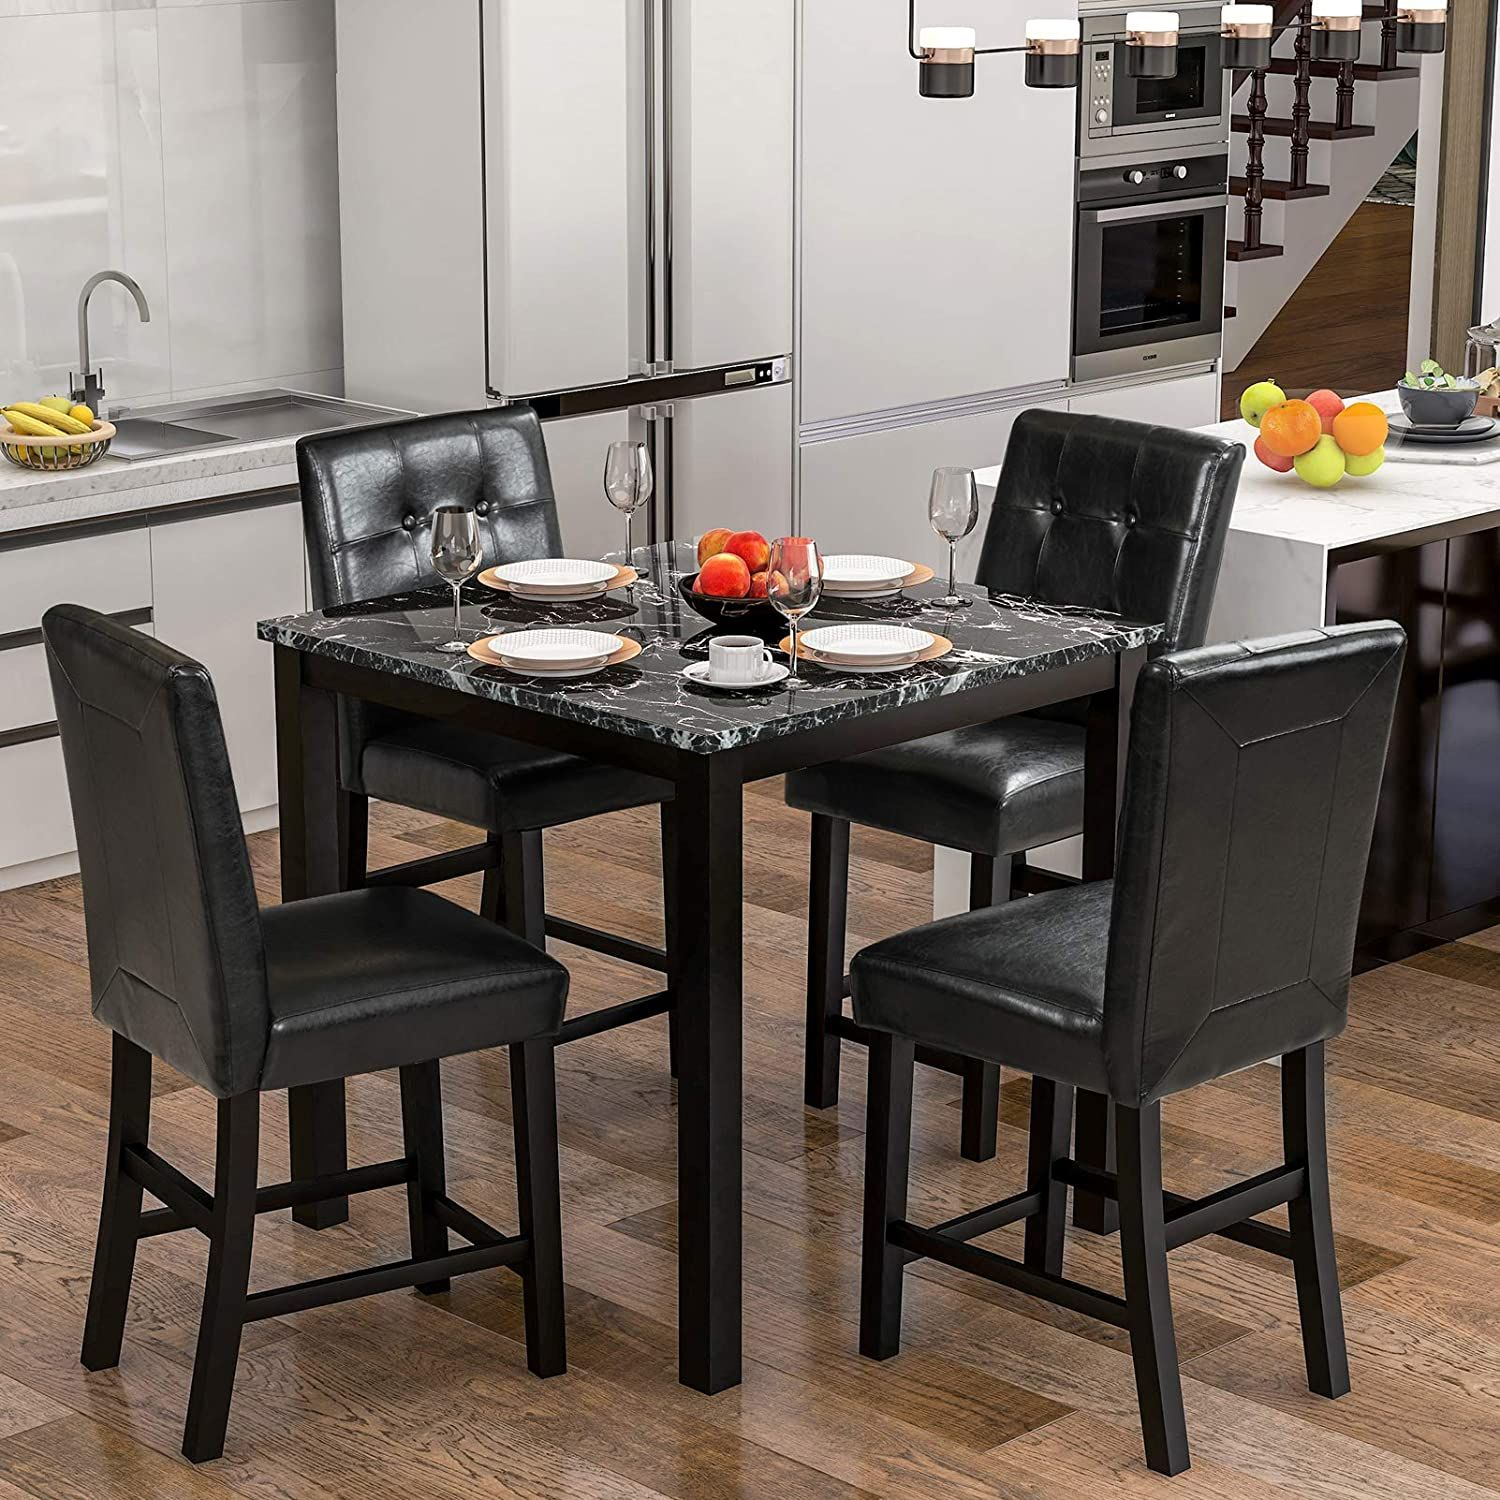 5 Piece Dining Table Set With Faux Marble Top 4 Upholstered Leather Chairs For In 2021 Counter Height Dining Sets Kitchen Table Settings Counter Height Dining Table